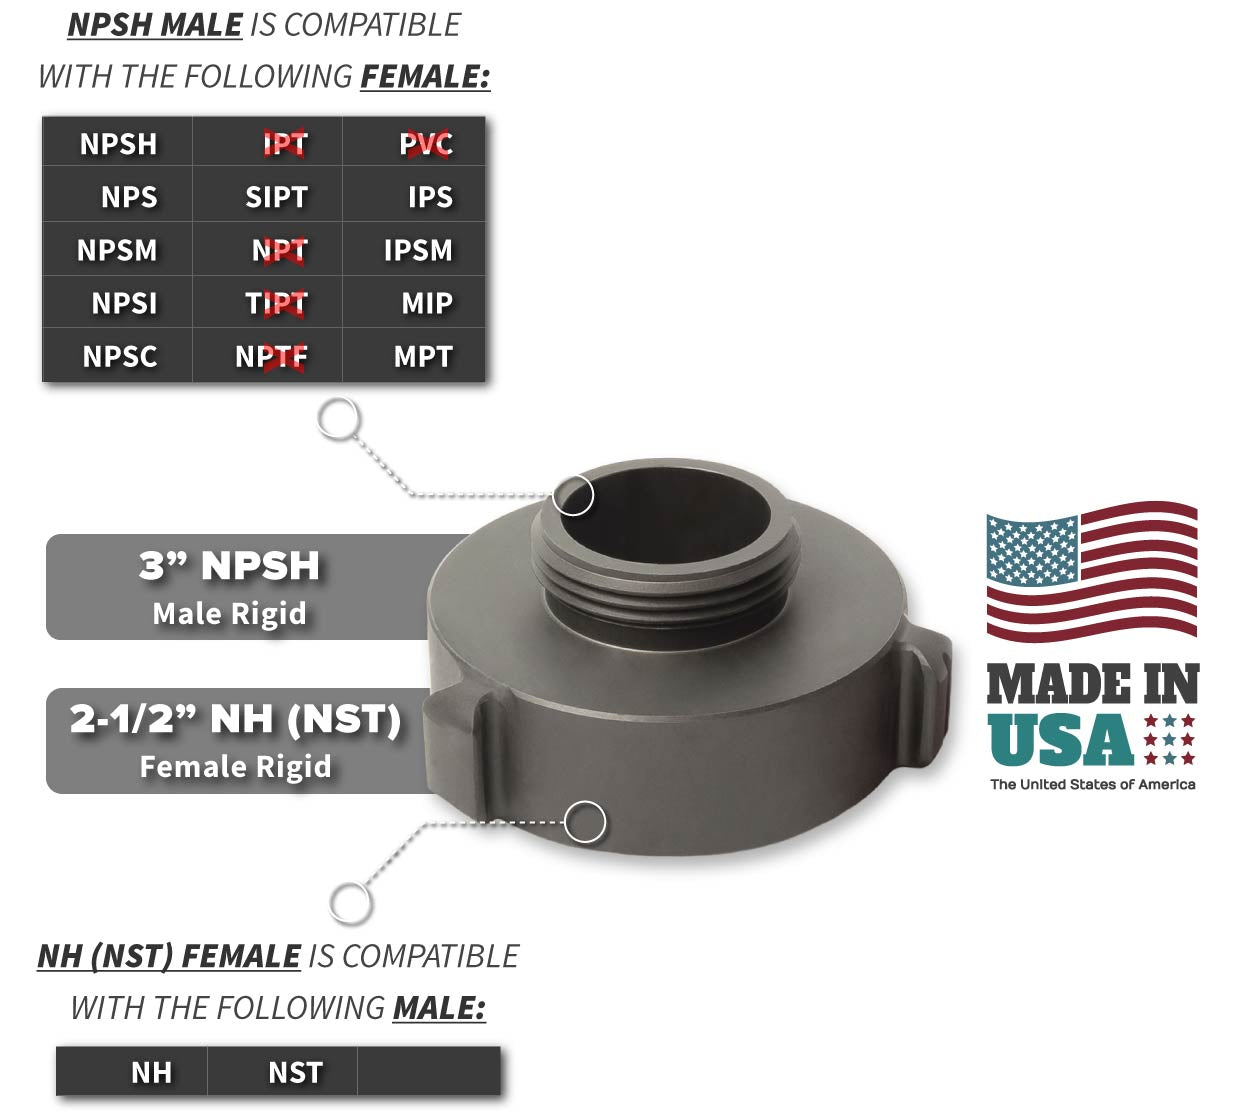 2.5 Inch NH-NST Female x 3 Inch NPSH Male Compatibility Thread Chart